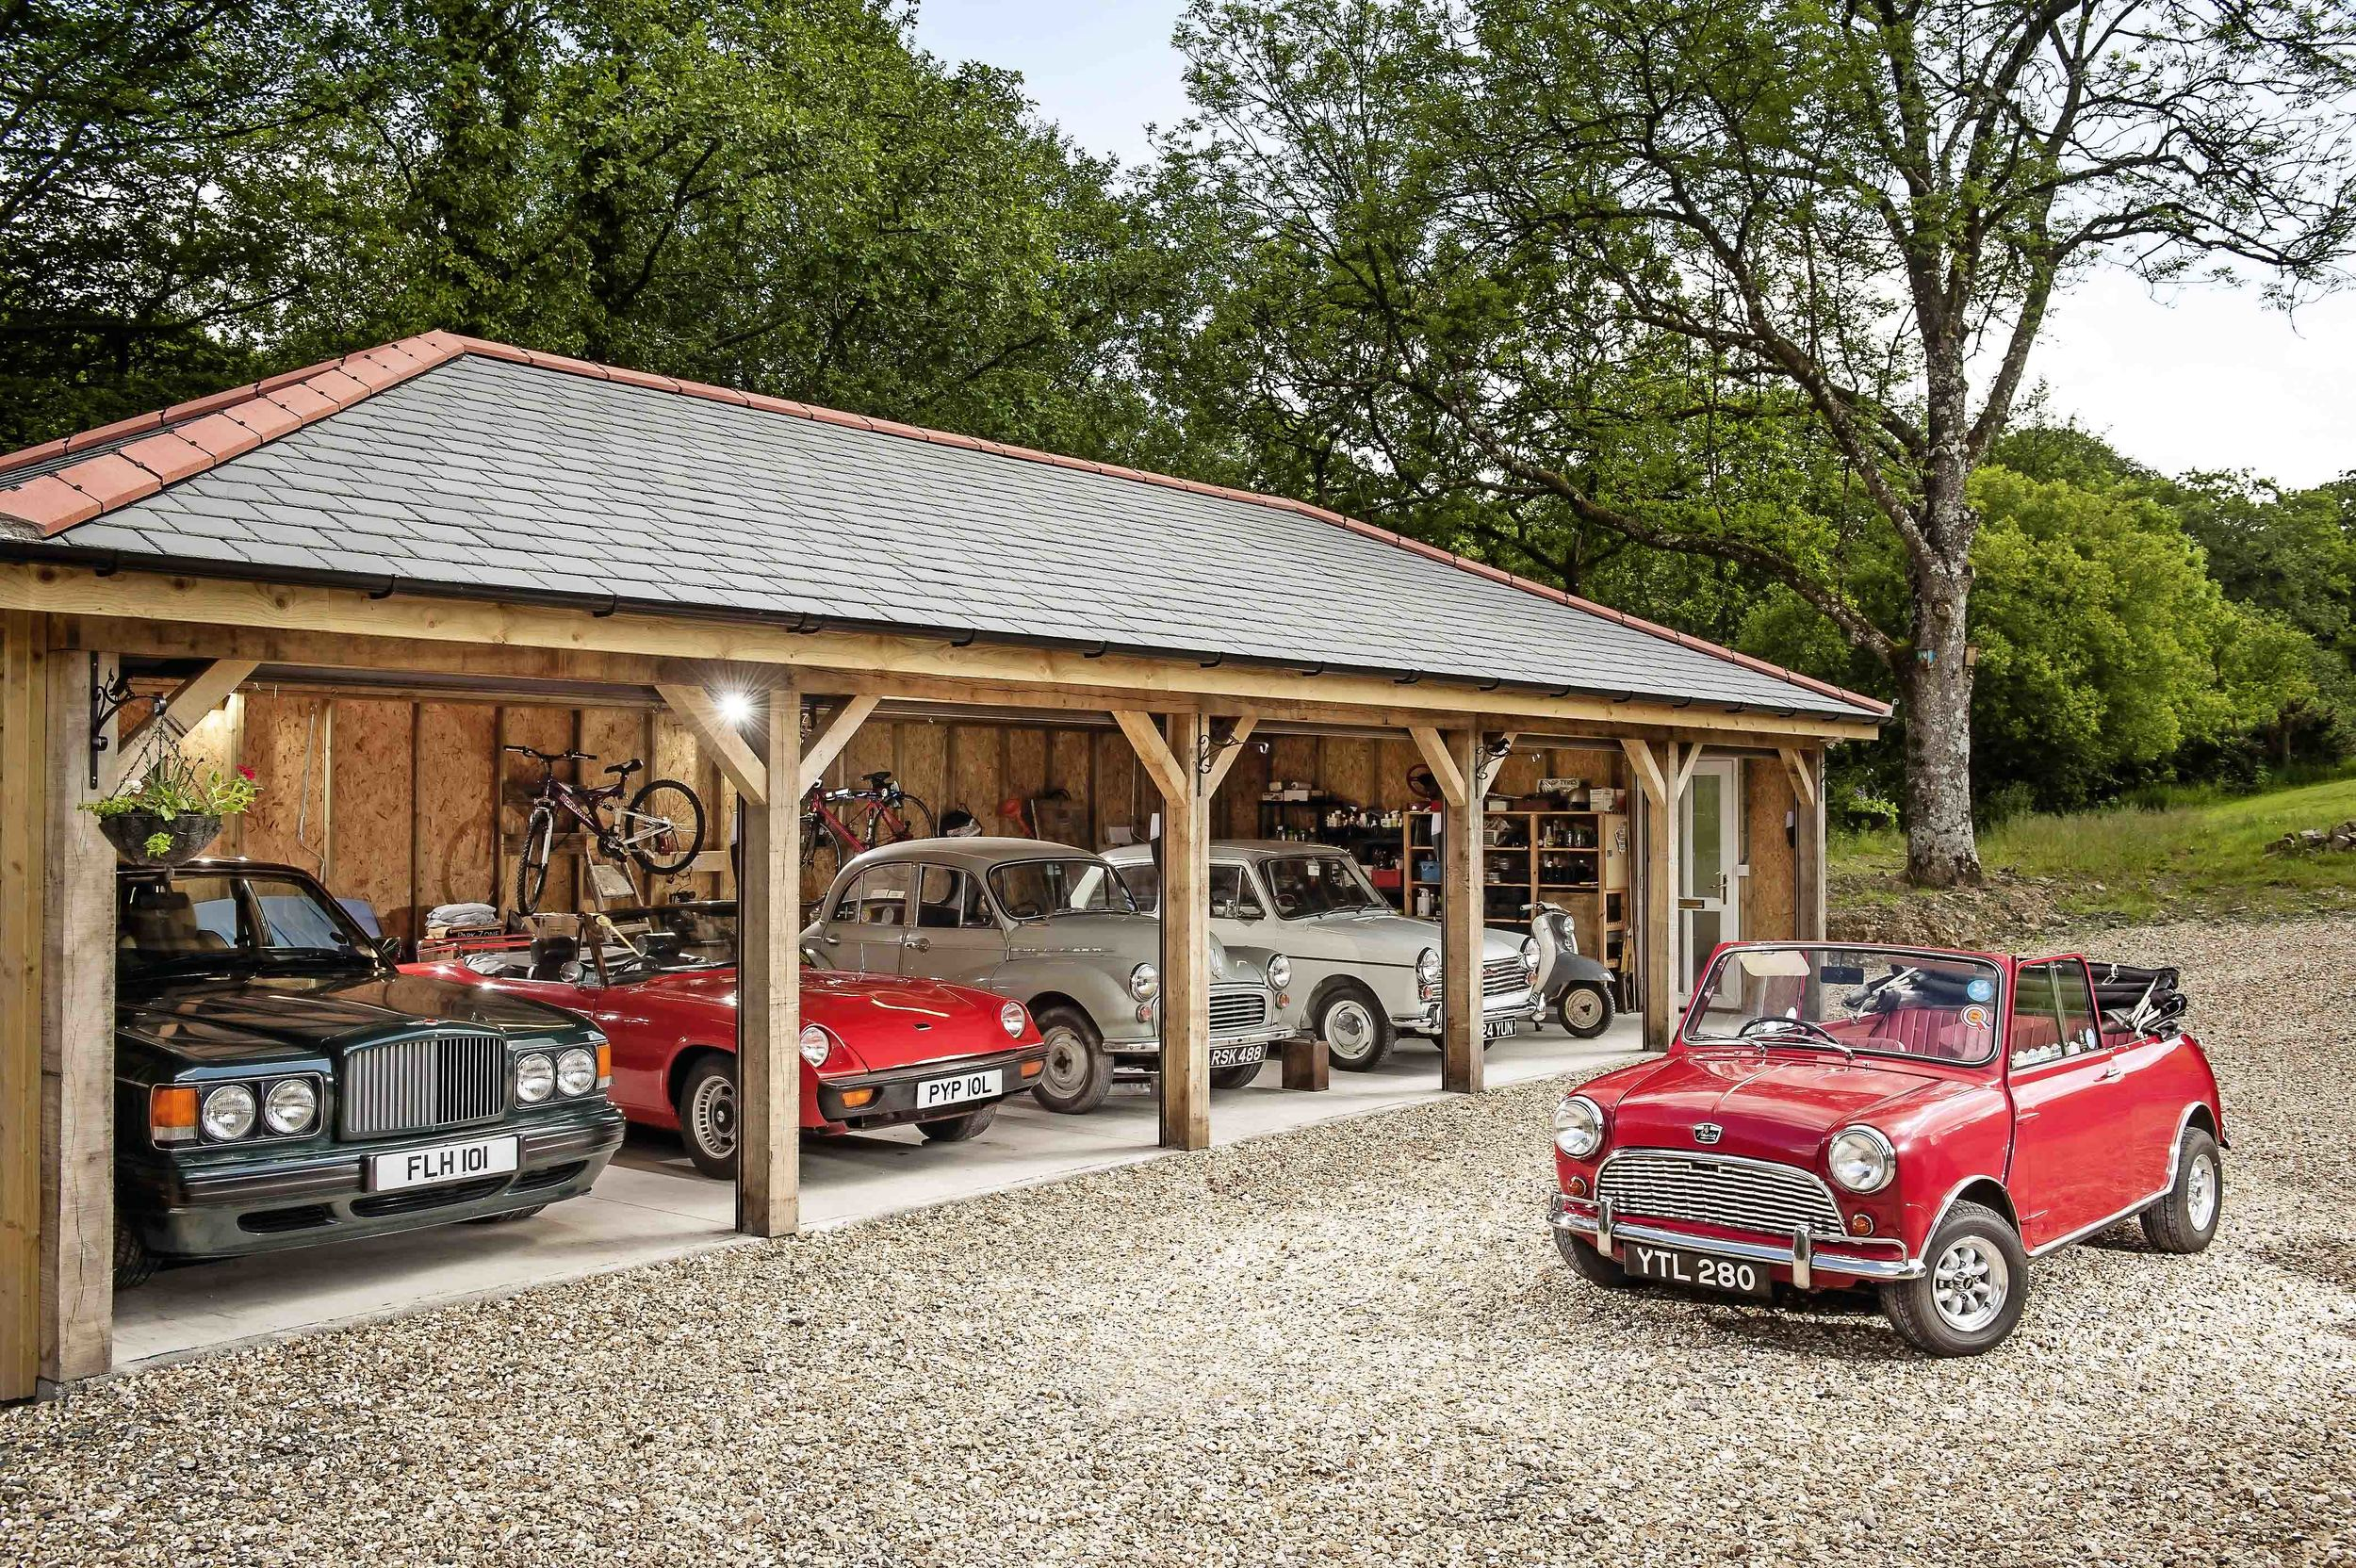 The remarkable collection owned by one family - including one amazing Crayford Mini.